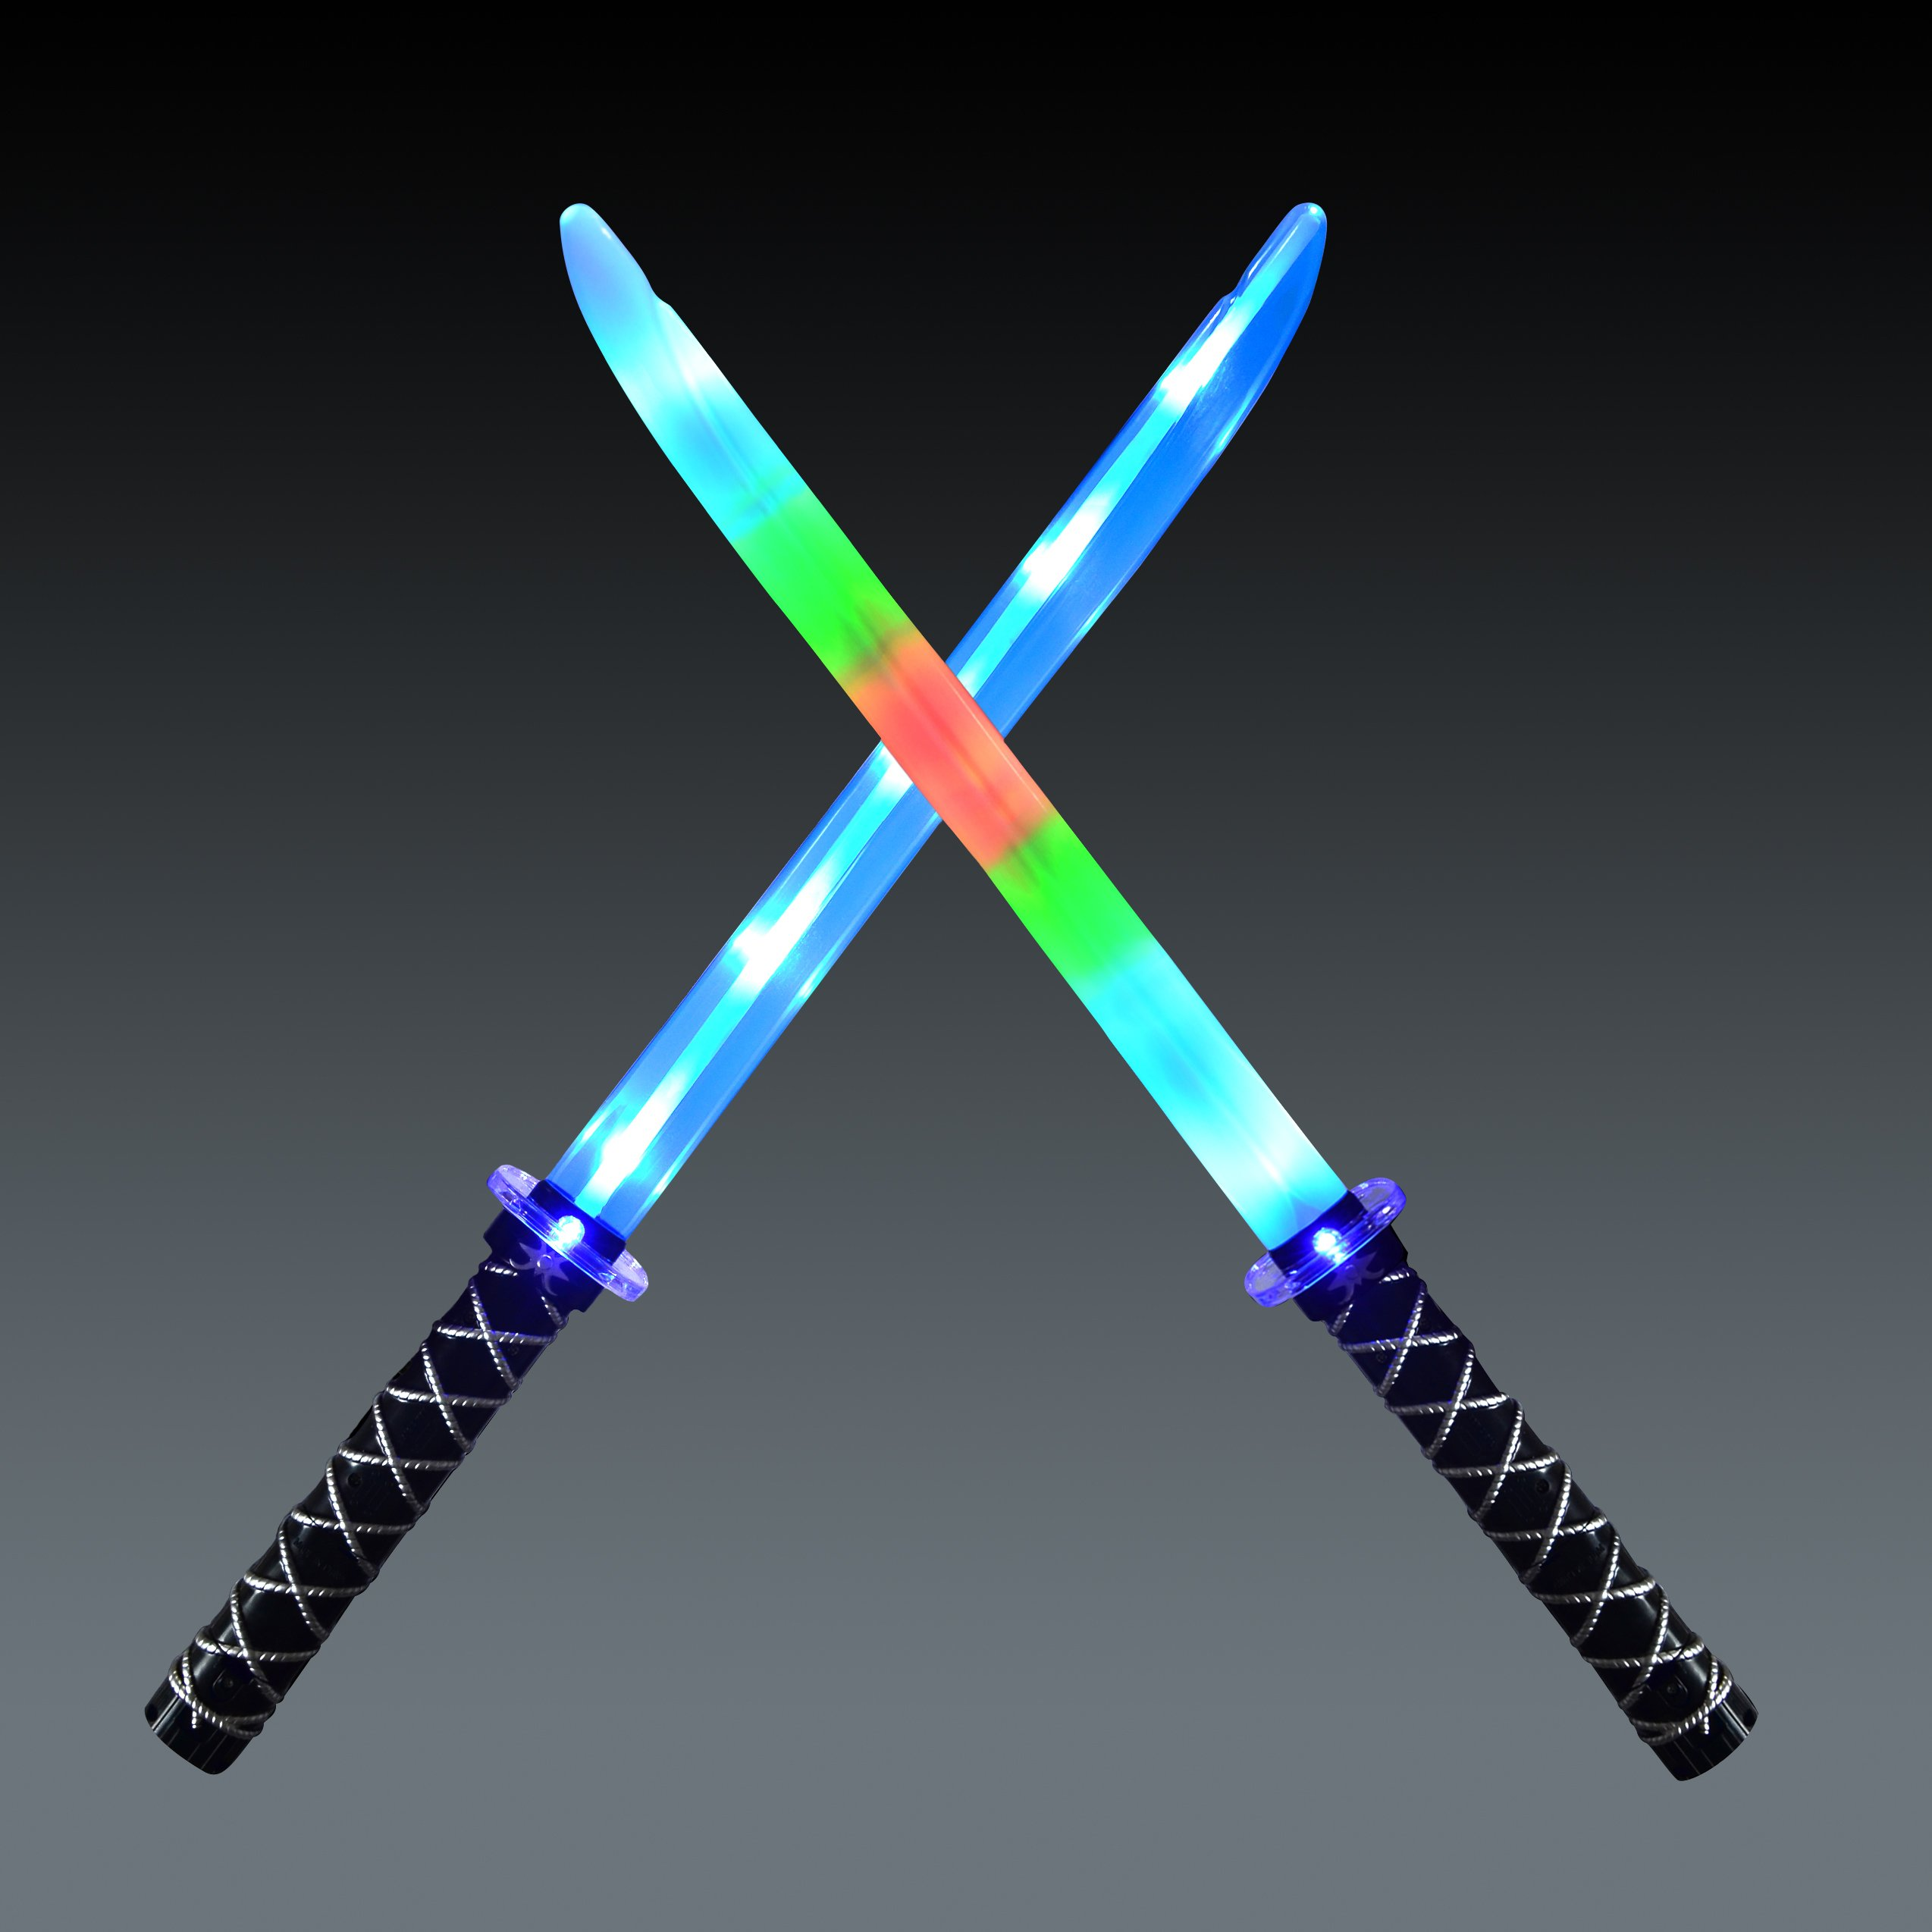 JOYIN 2 Deluxe Ninja LED Light Up Swords with Motion Activated Clanging Sounds ñ Bright Blue and Multi Color Sword for Halloween Party, Costume Accessories by JOYIN